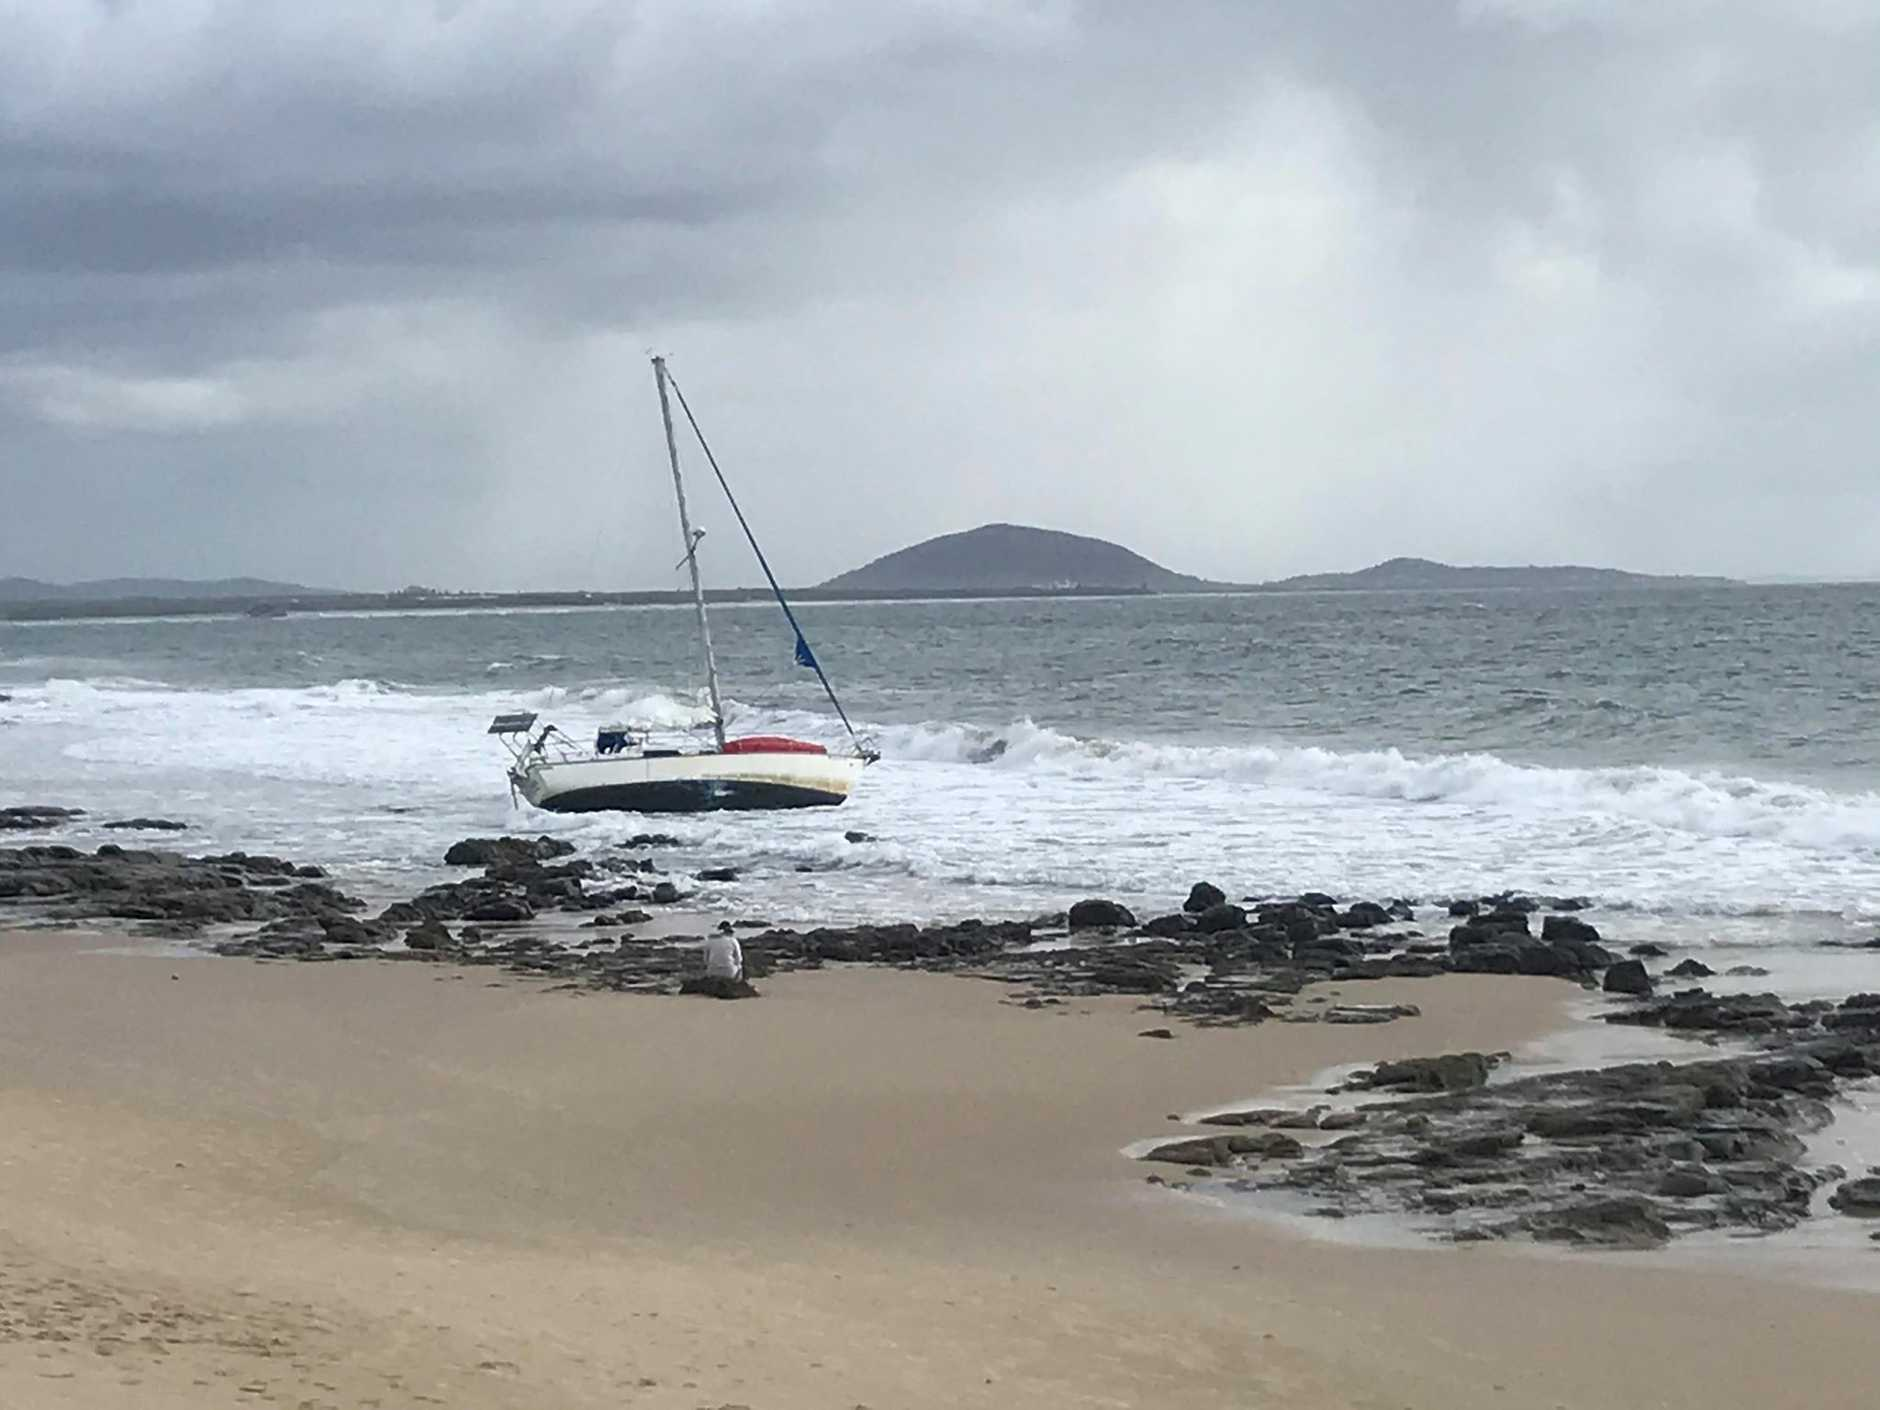 Authorities have commenced a search after a yacht washed up on Mooloolaba Beach this morning.